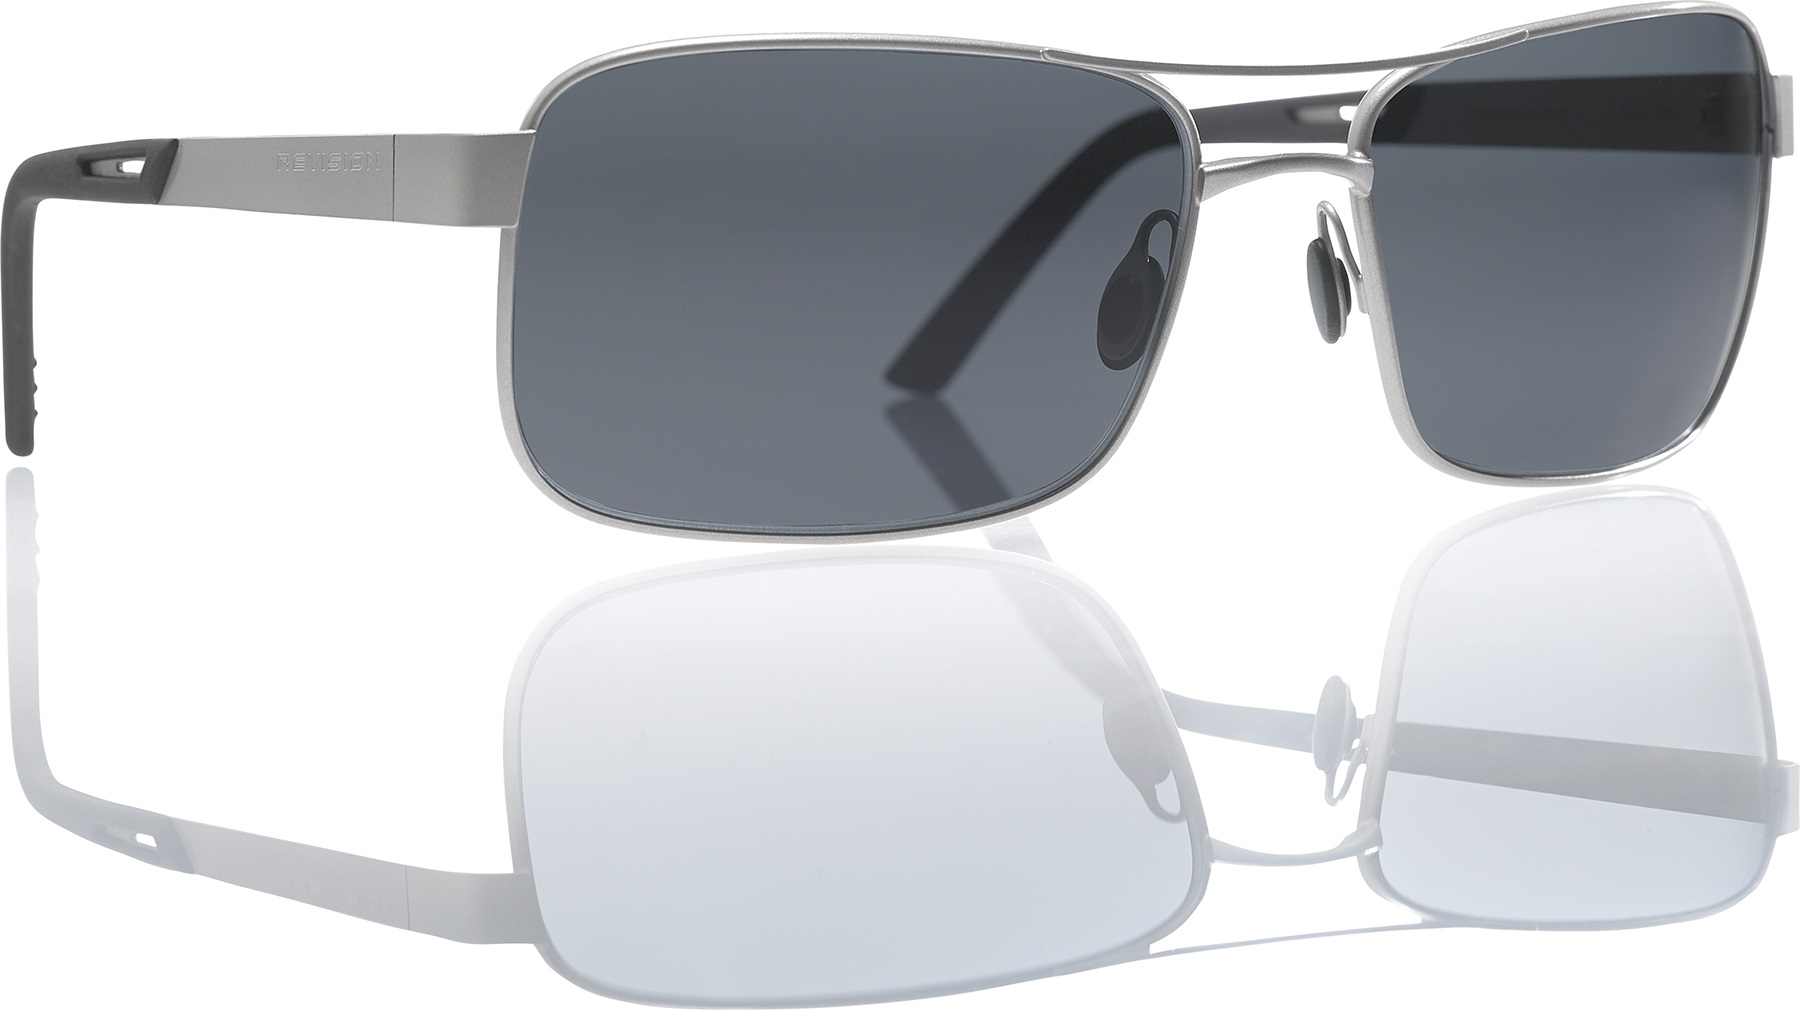 95fed3ef72c7 Deltawing Sunglasses FREE S H 4-0493-0008